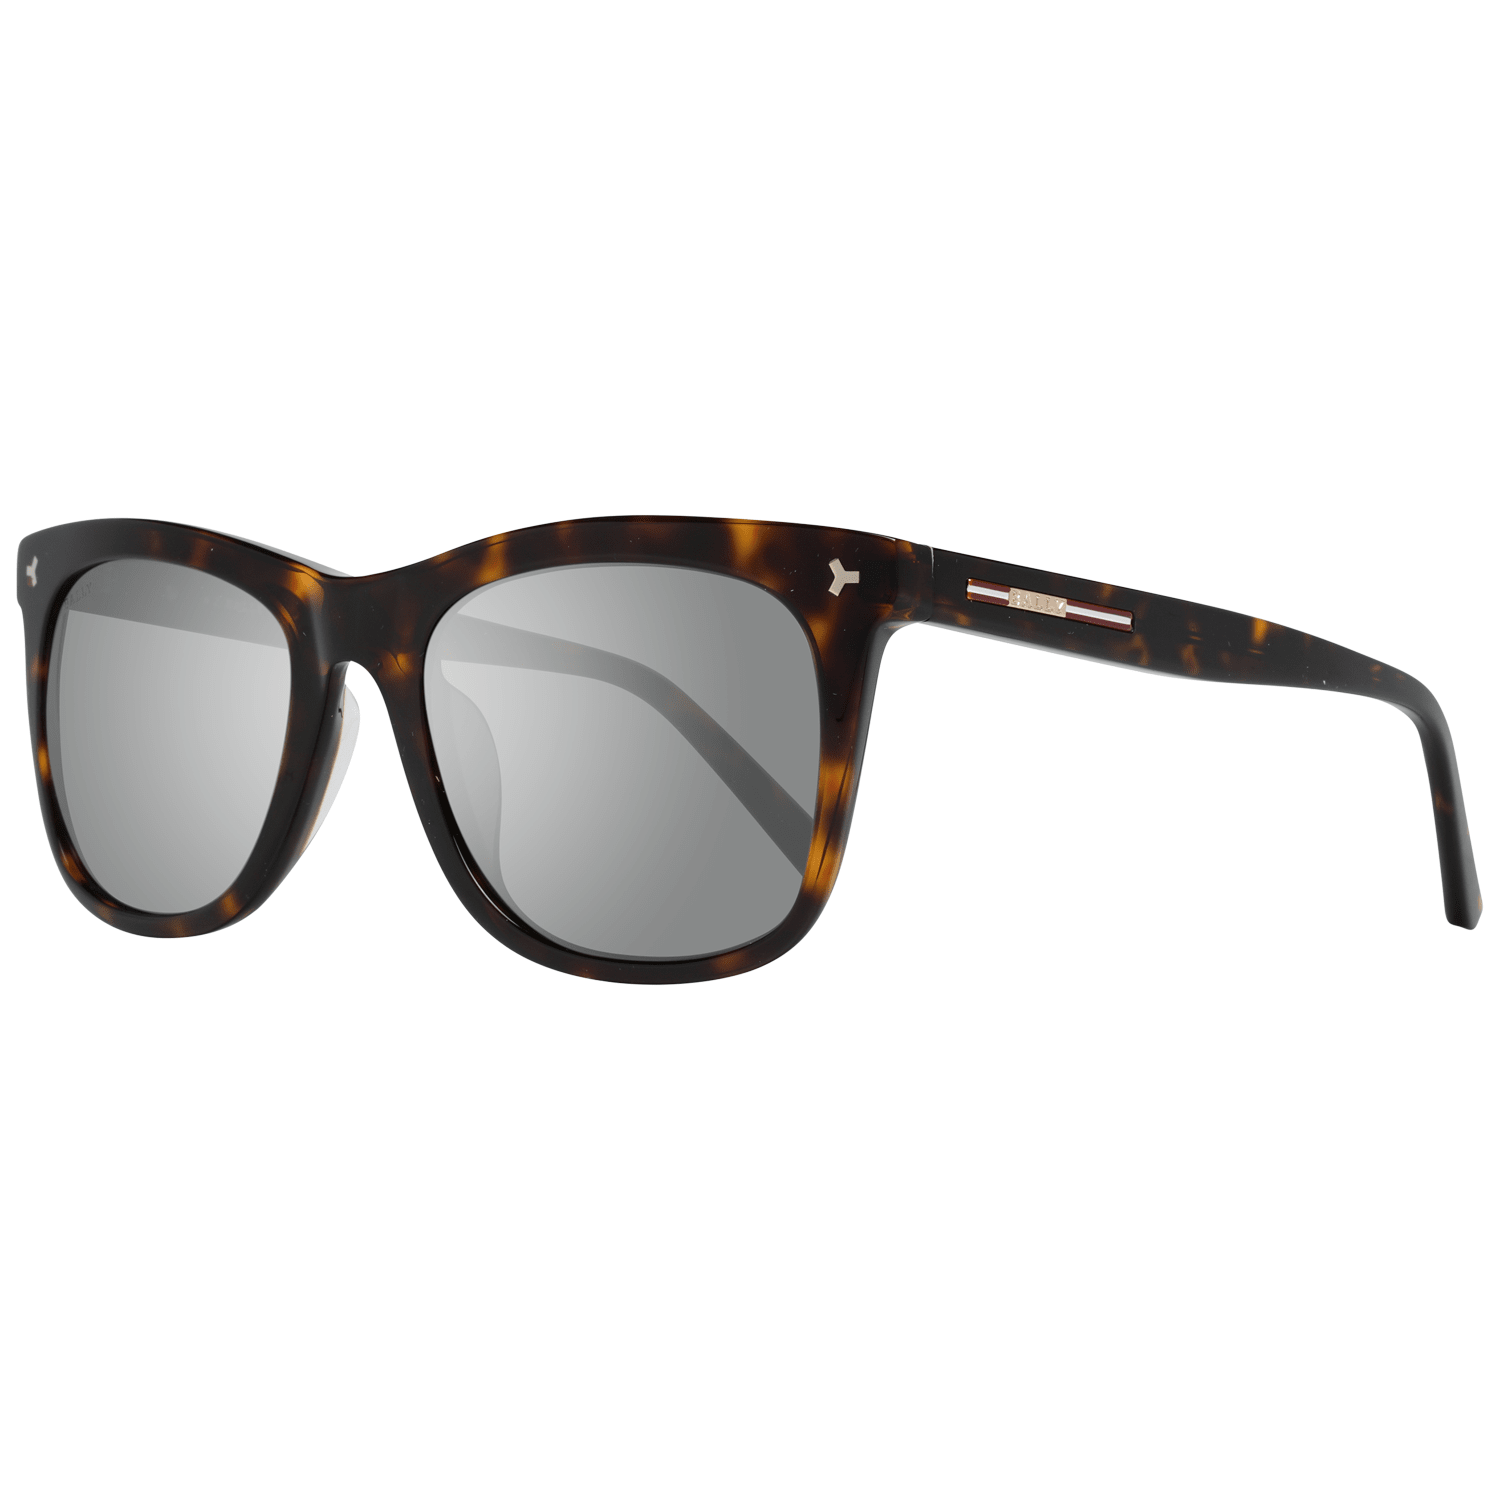 Bally Unisex Sunglasses Brown BY0014-H 5552A